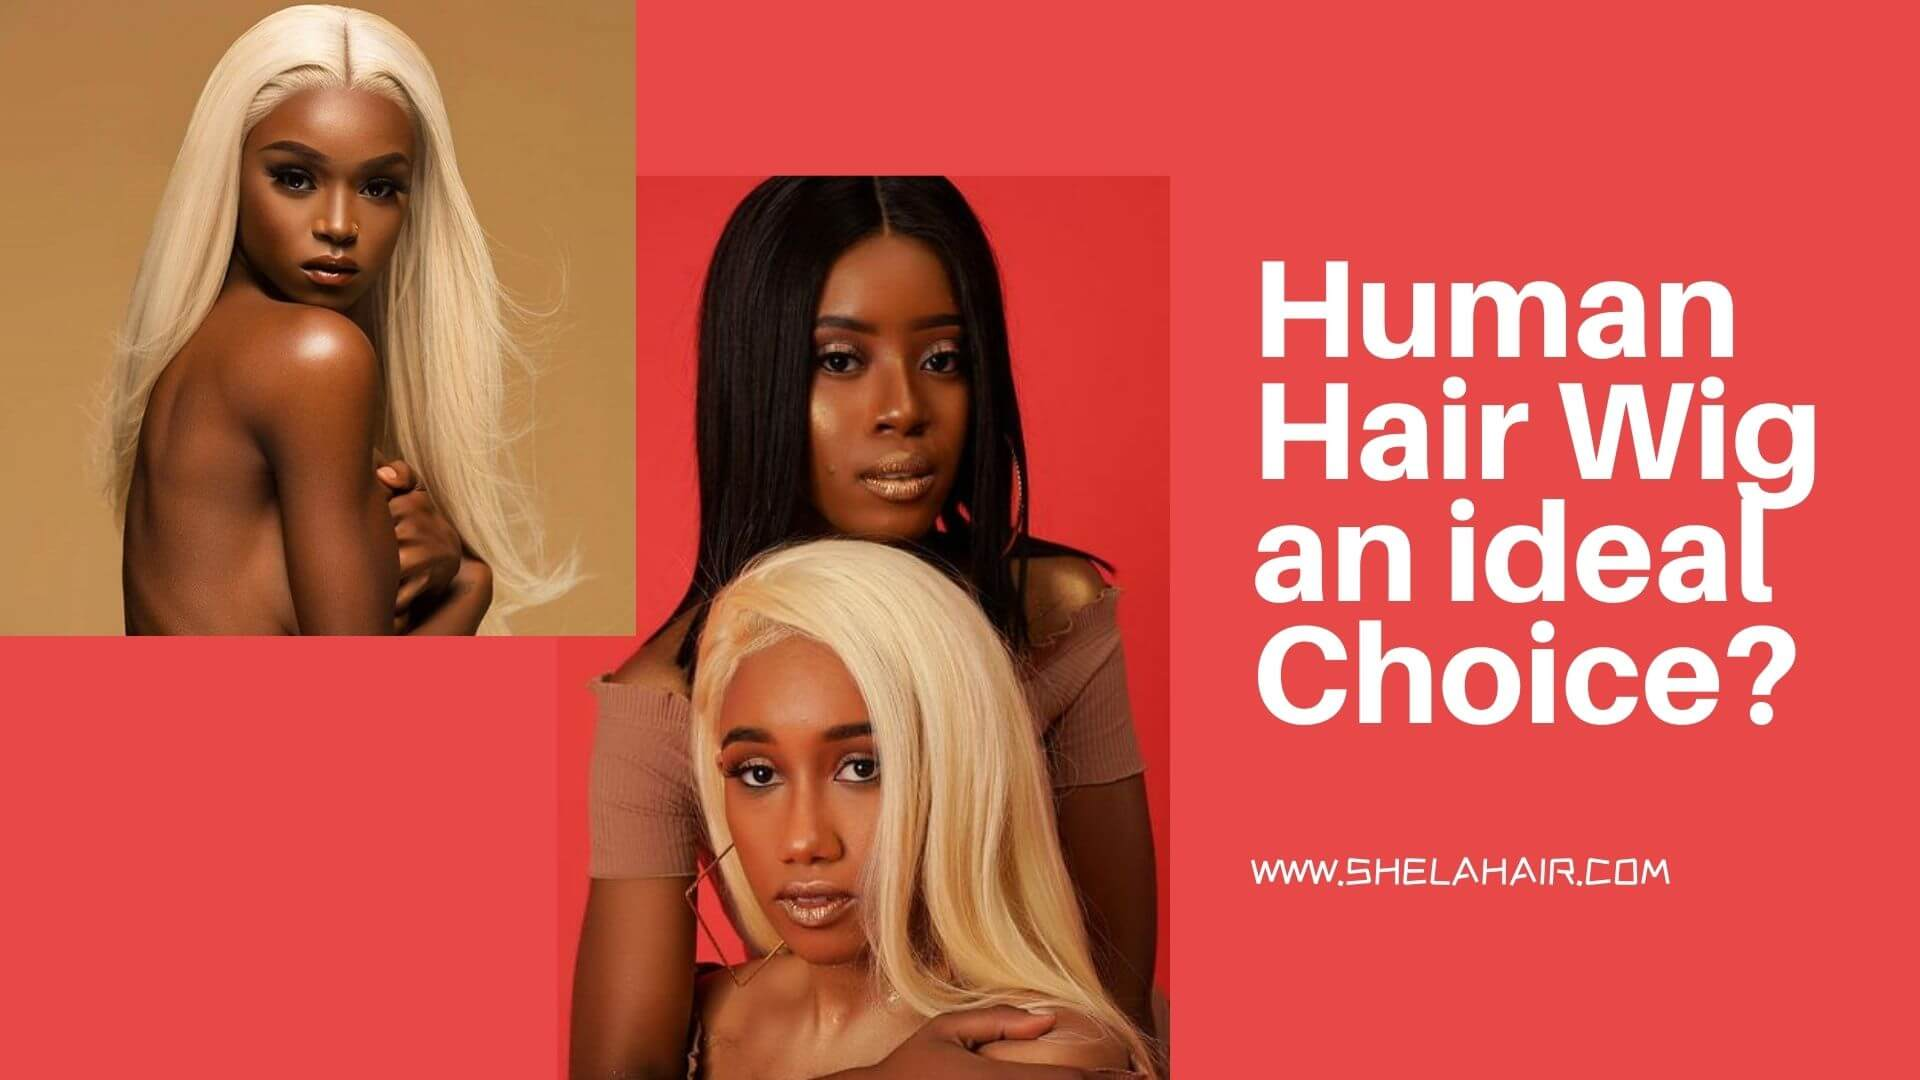 Is the Human Hair Wig an ideal Choice when it comes to Beauty?